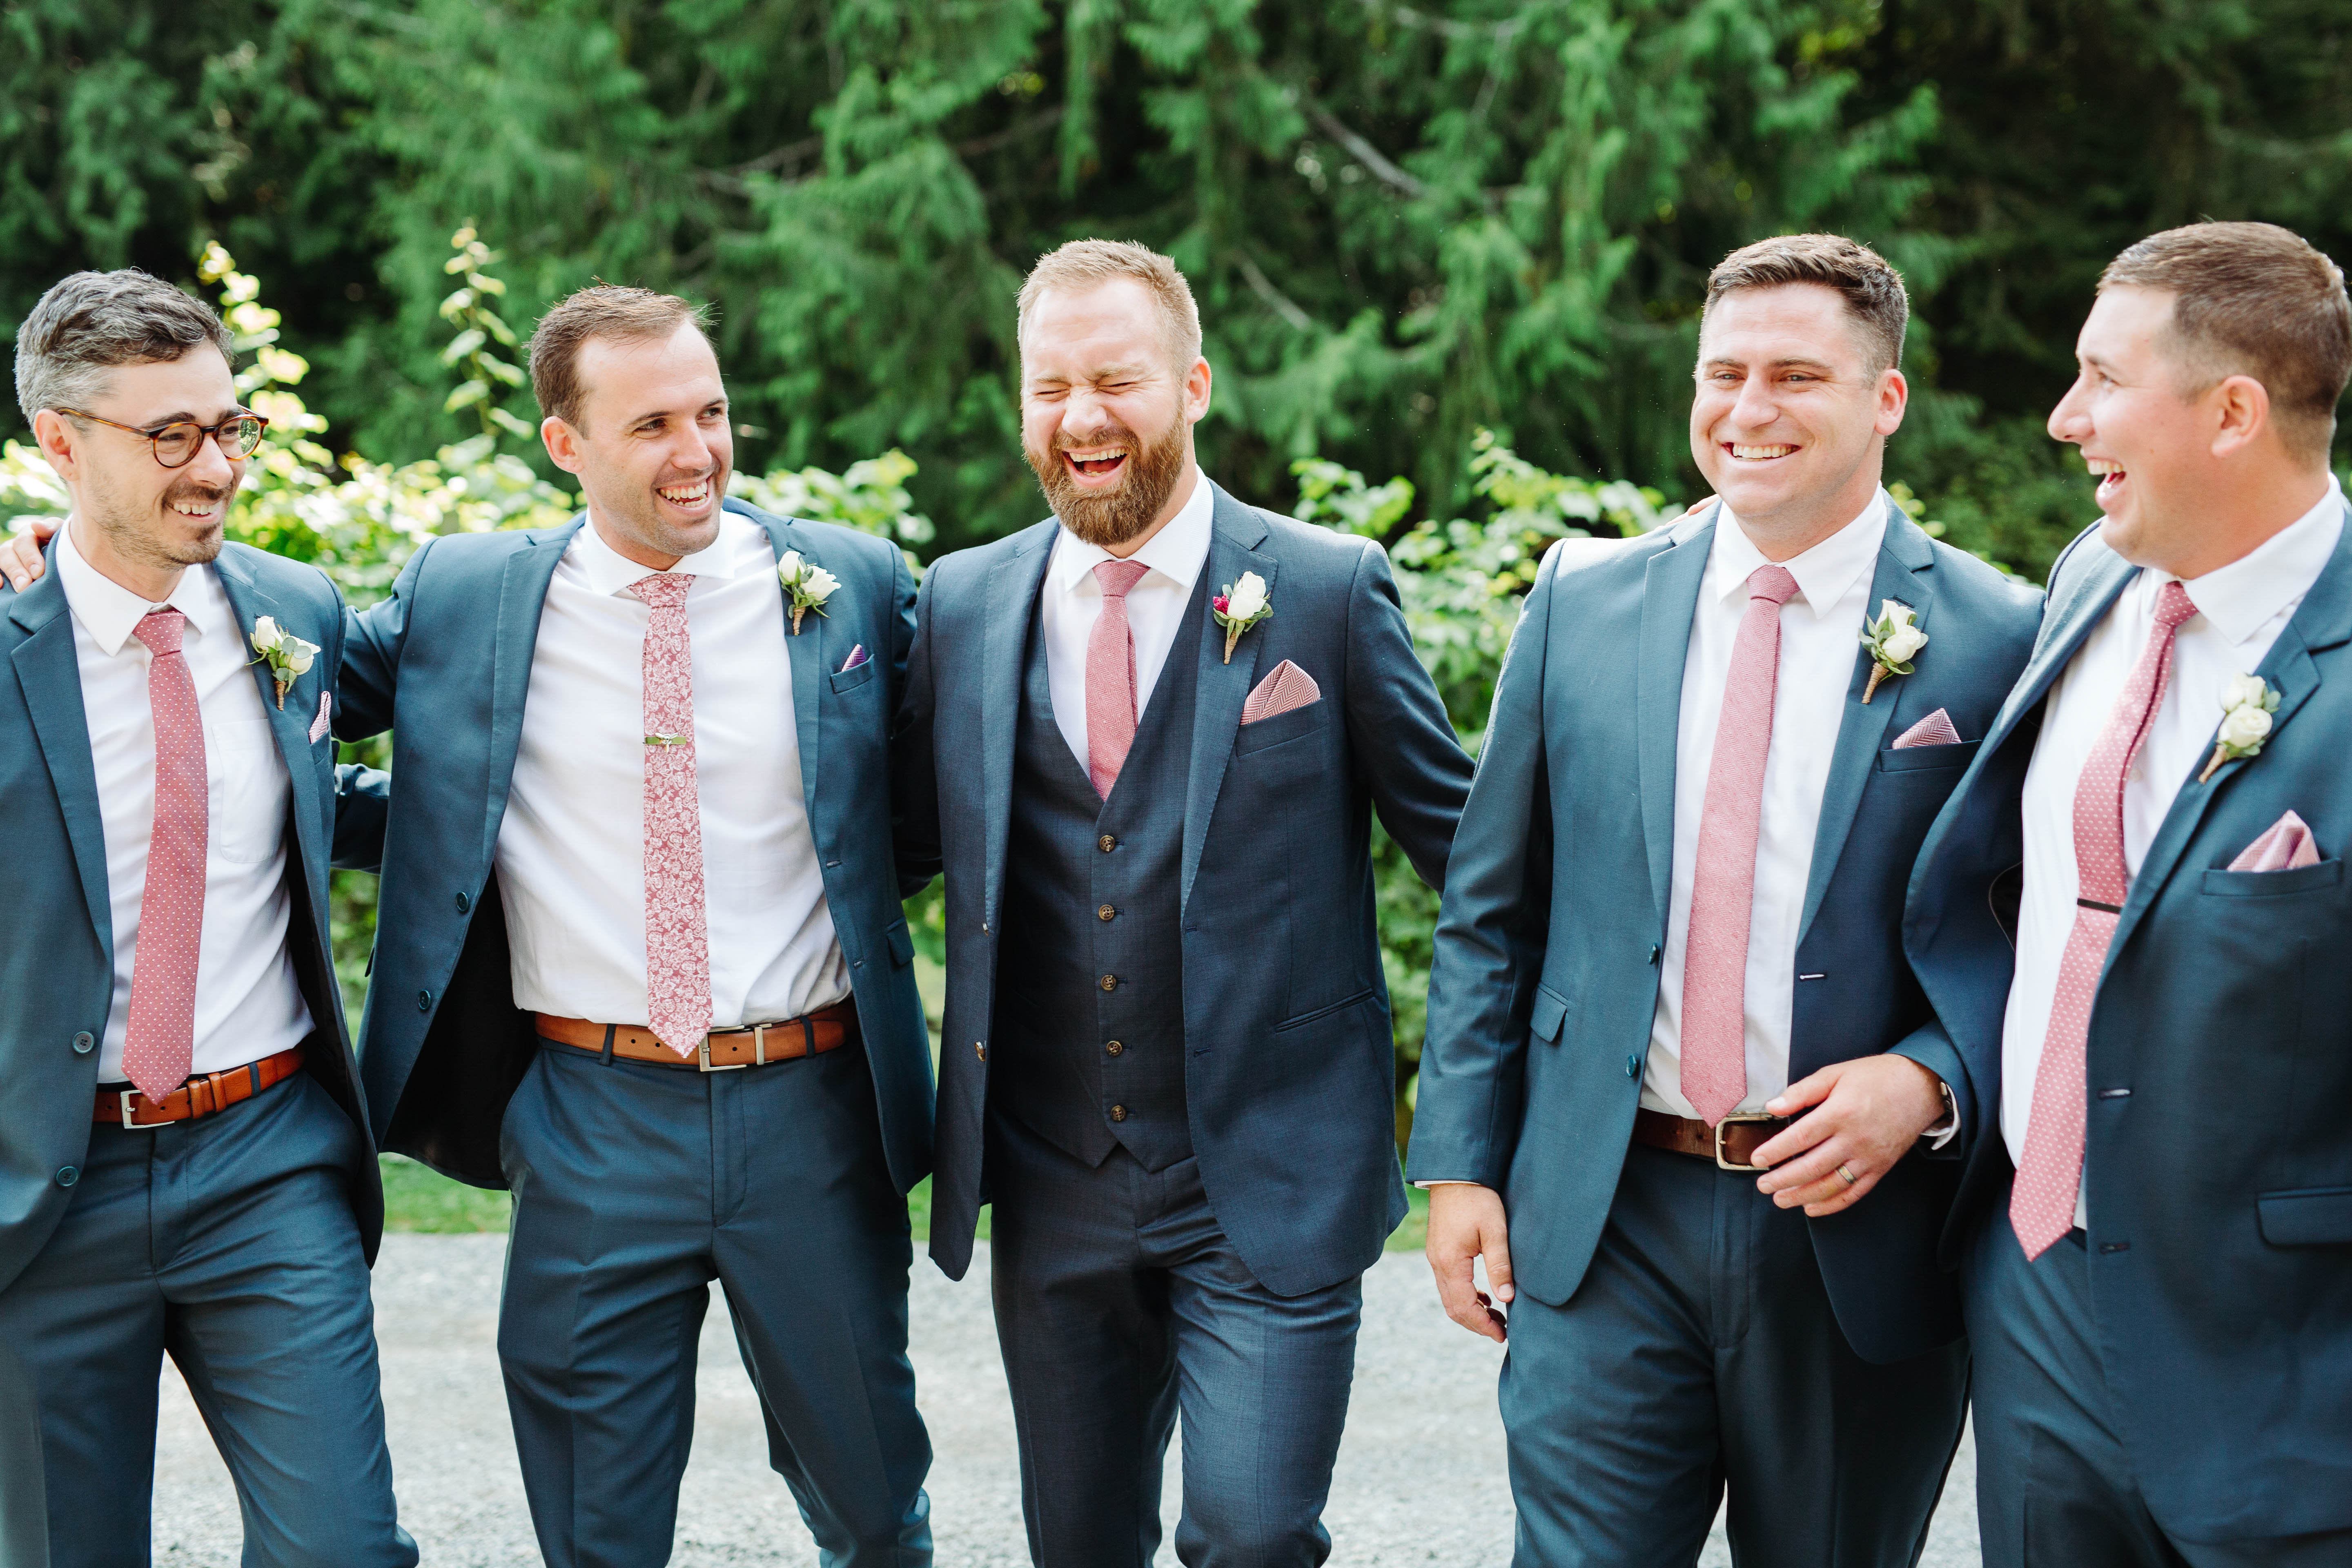 Groom and groomsmen in blue suits and pink ties - photo by Cameron Zegers Photography